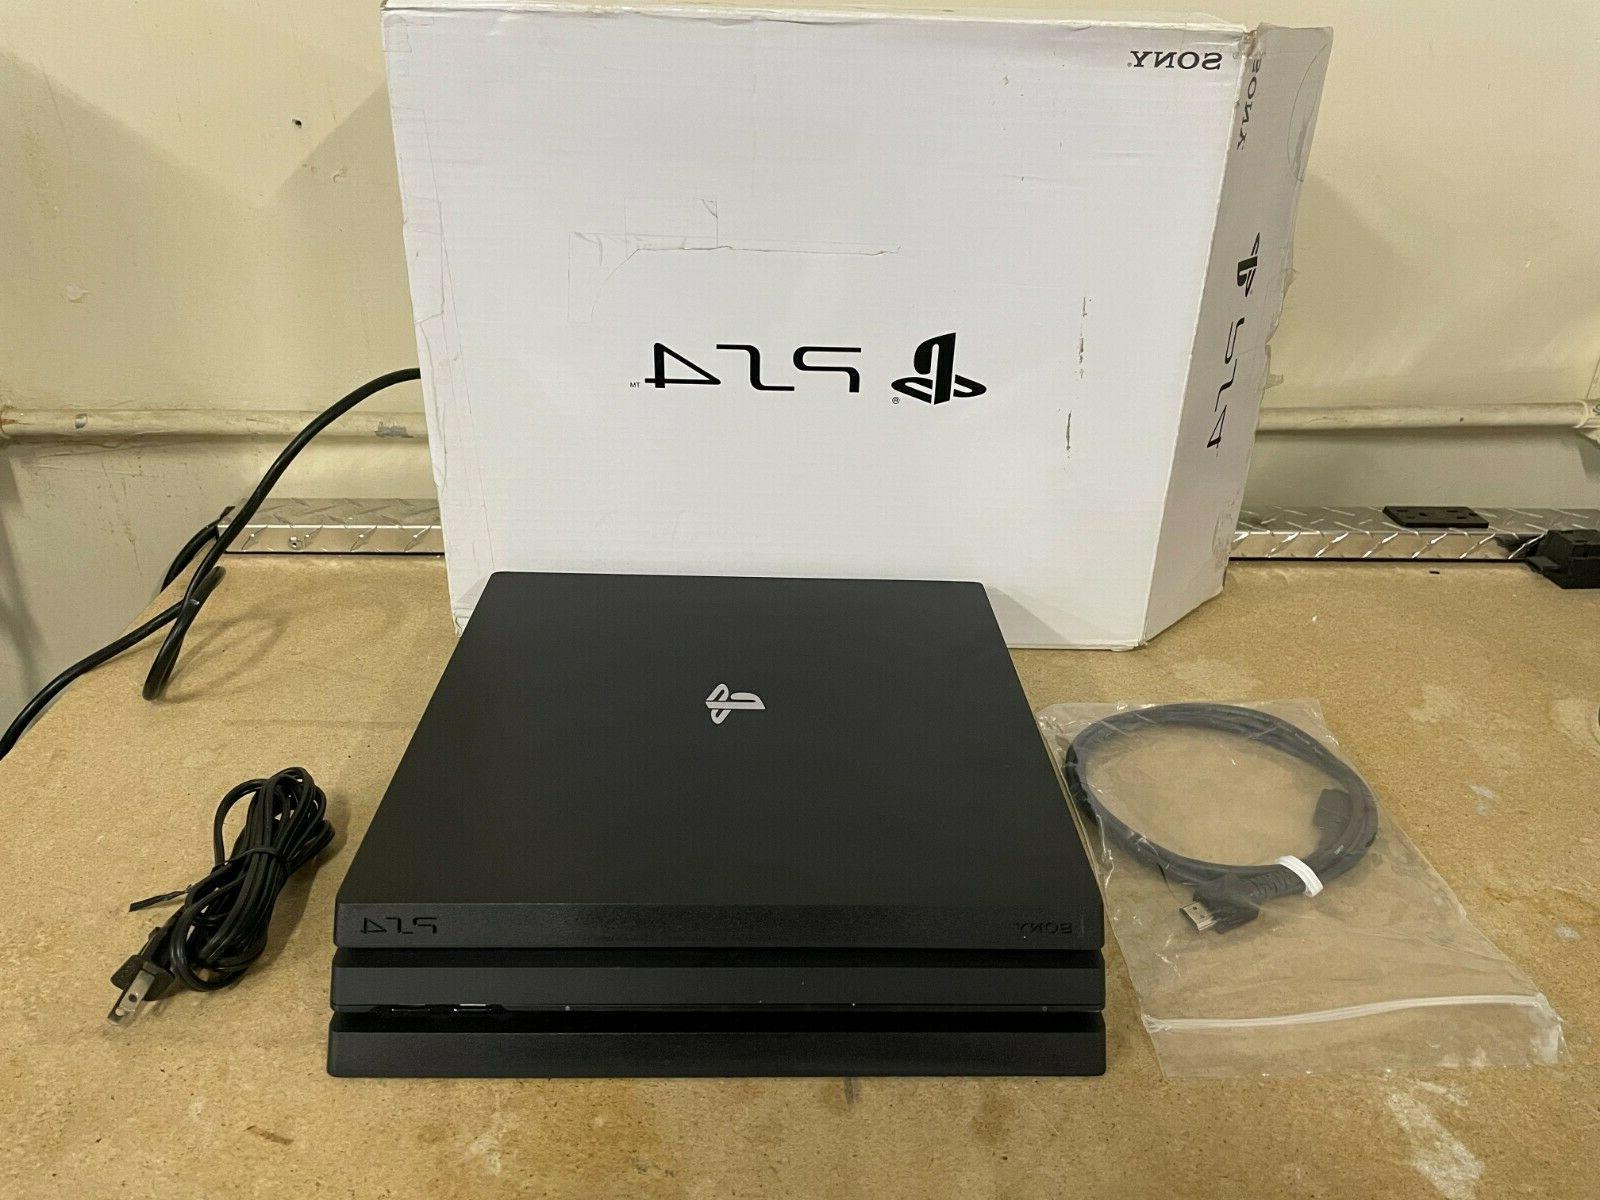 playstation 4 pro 1tb console with hdmi